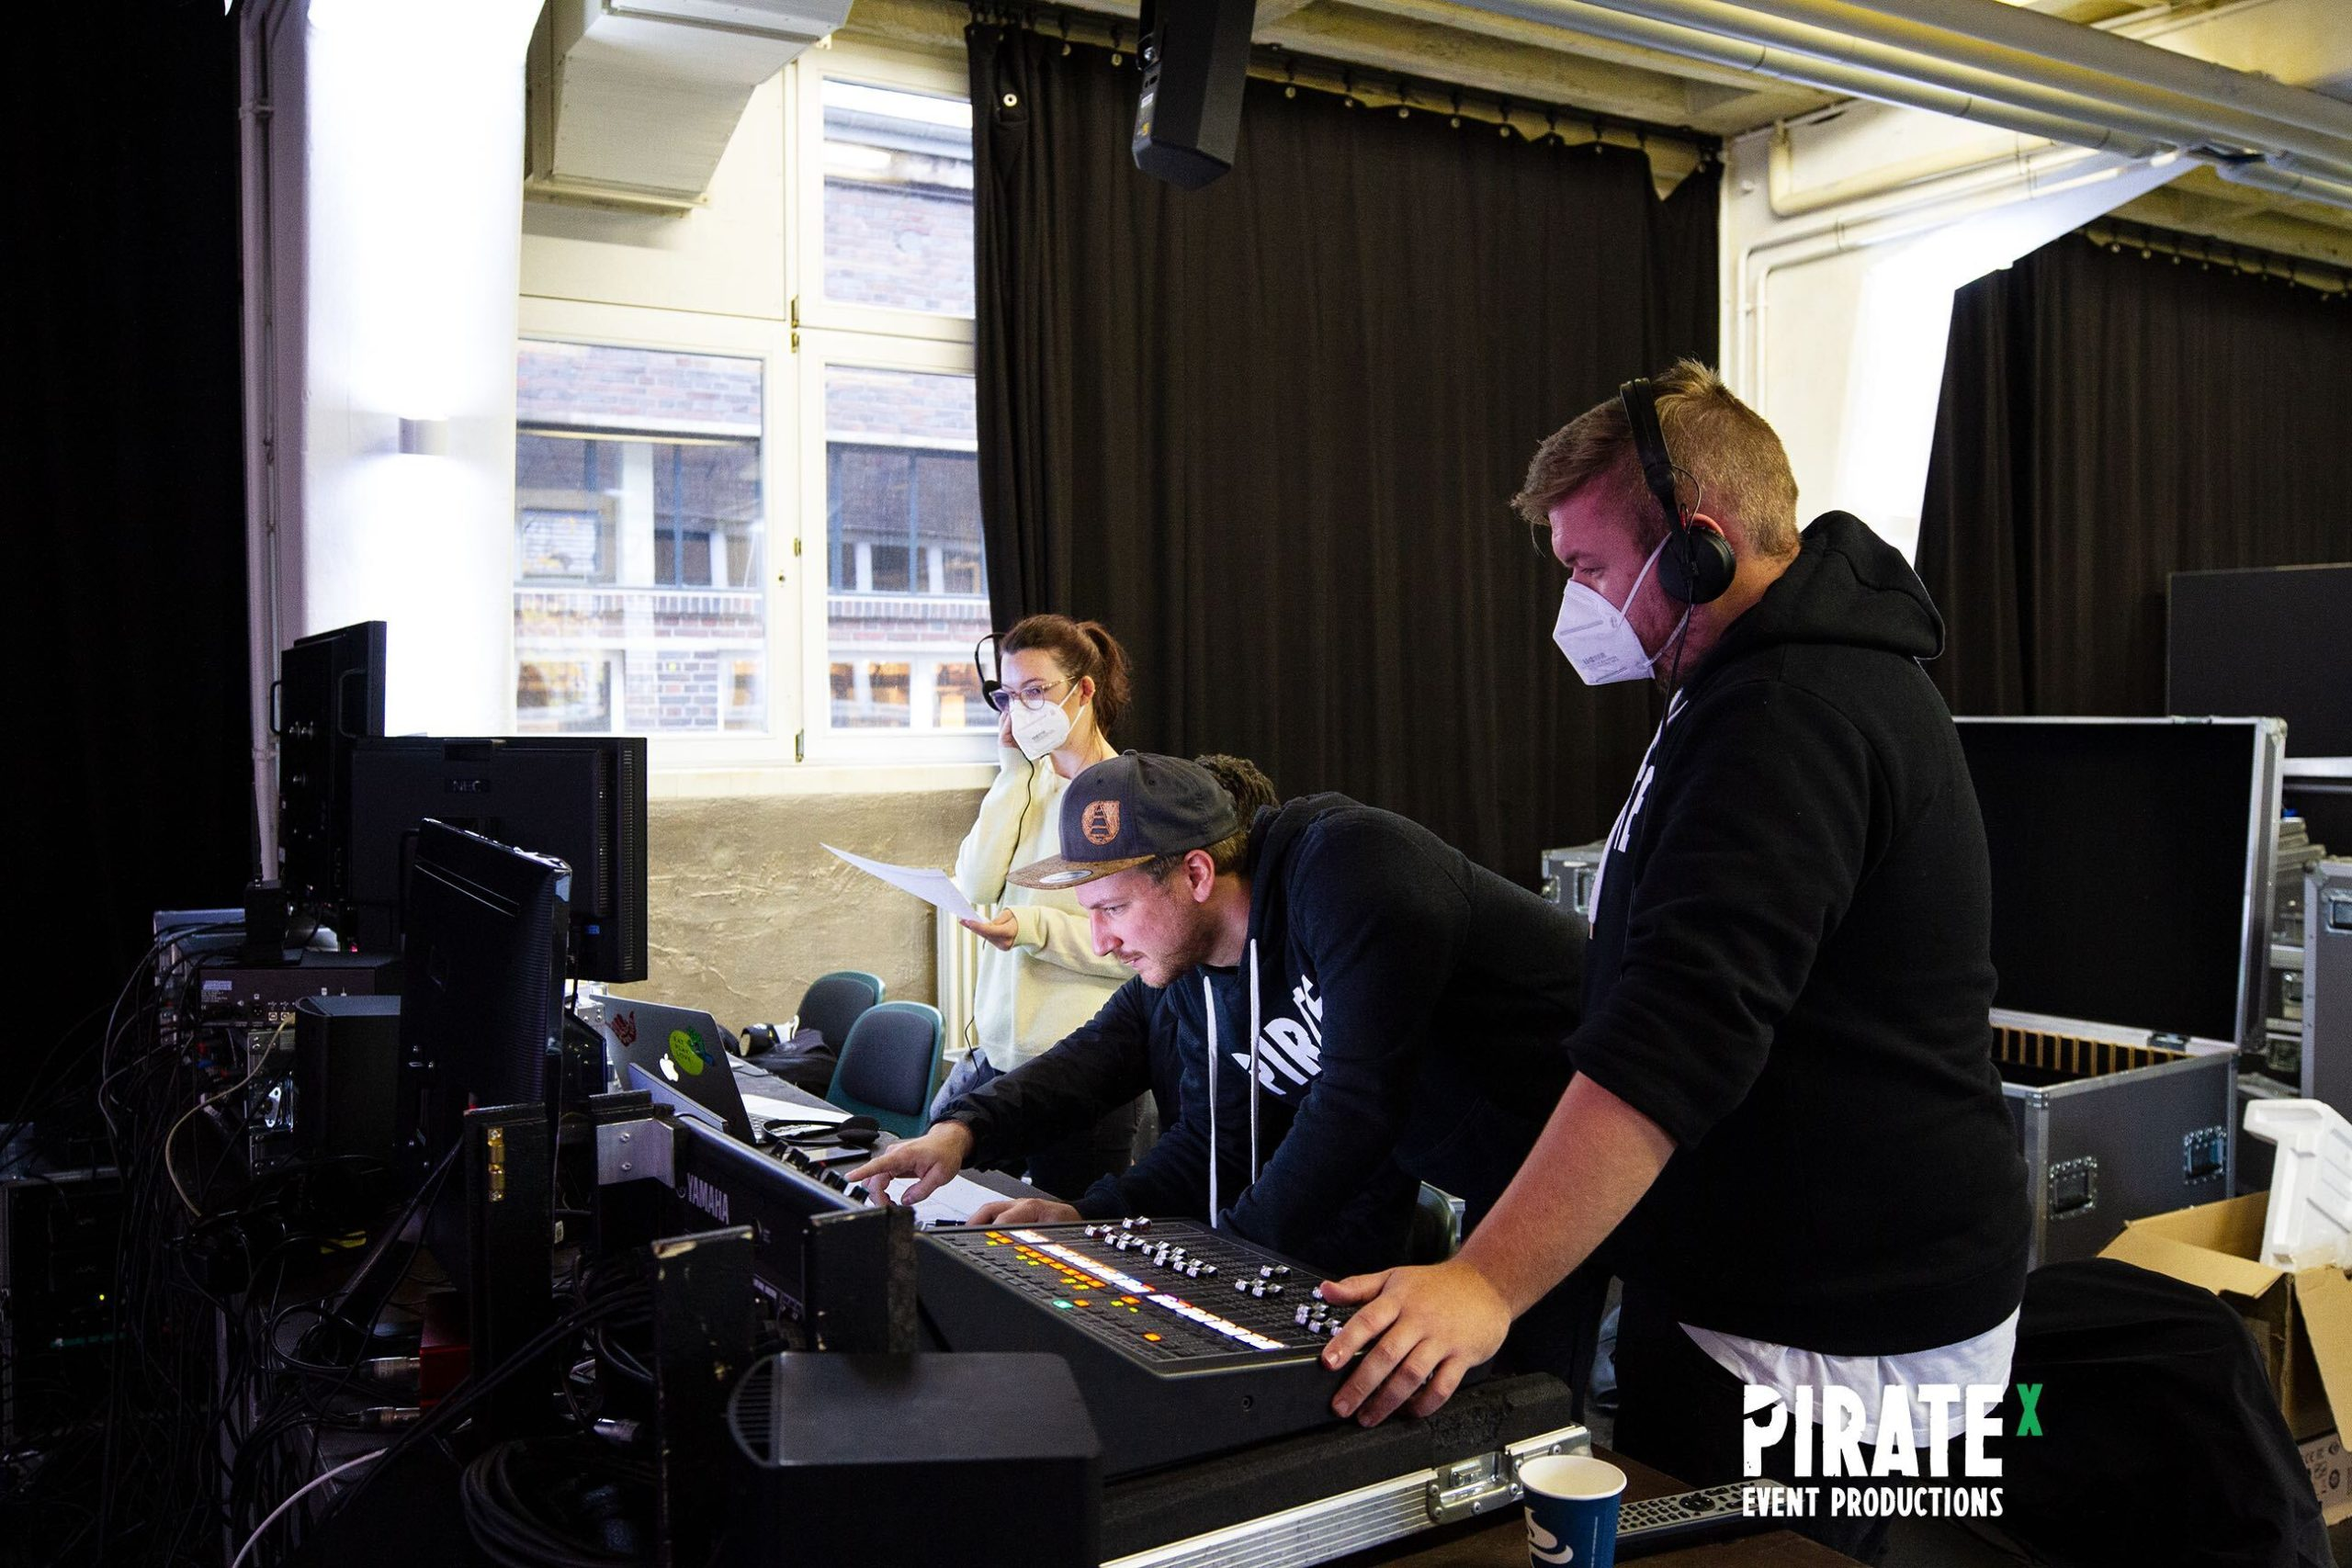 A look into the production of a PIRATEx remote event